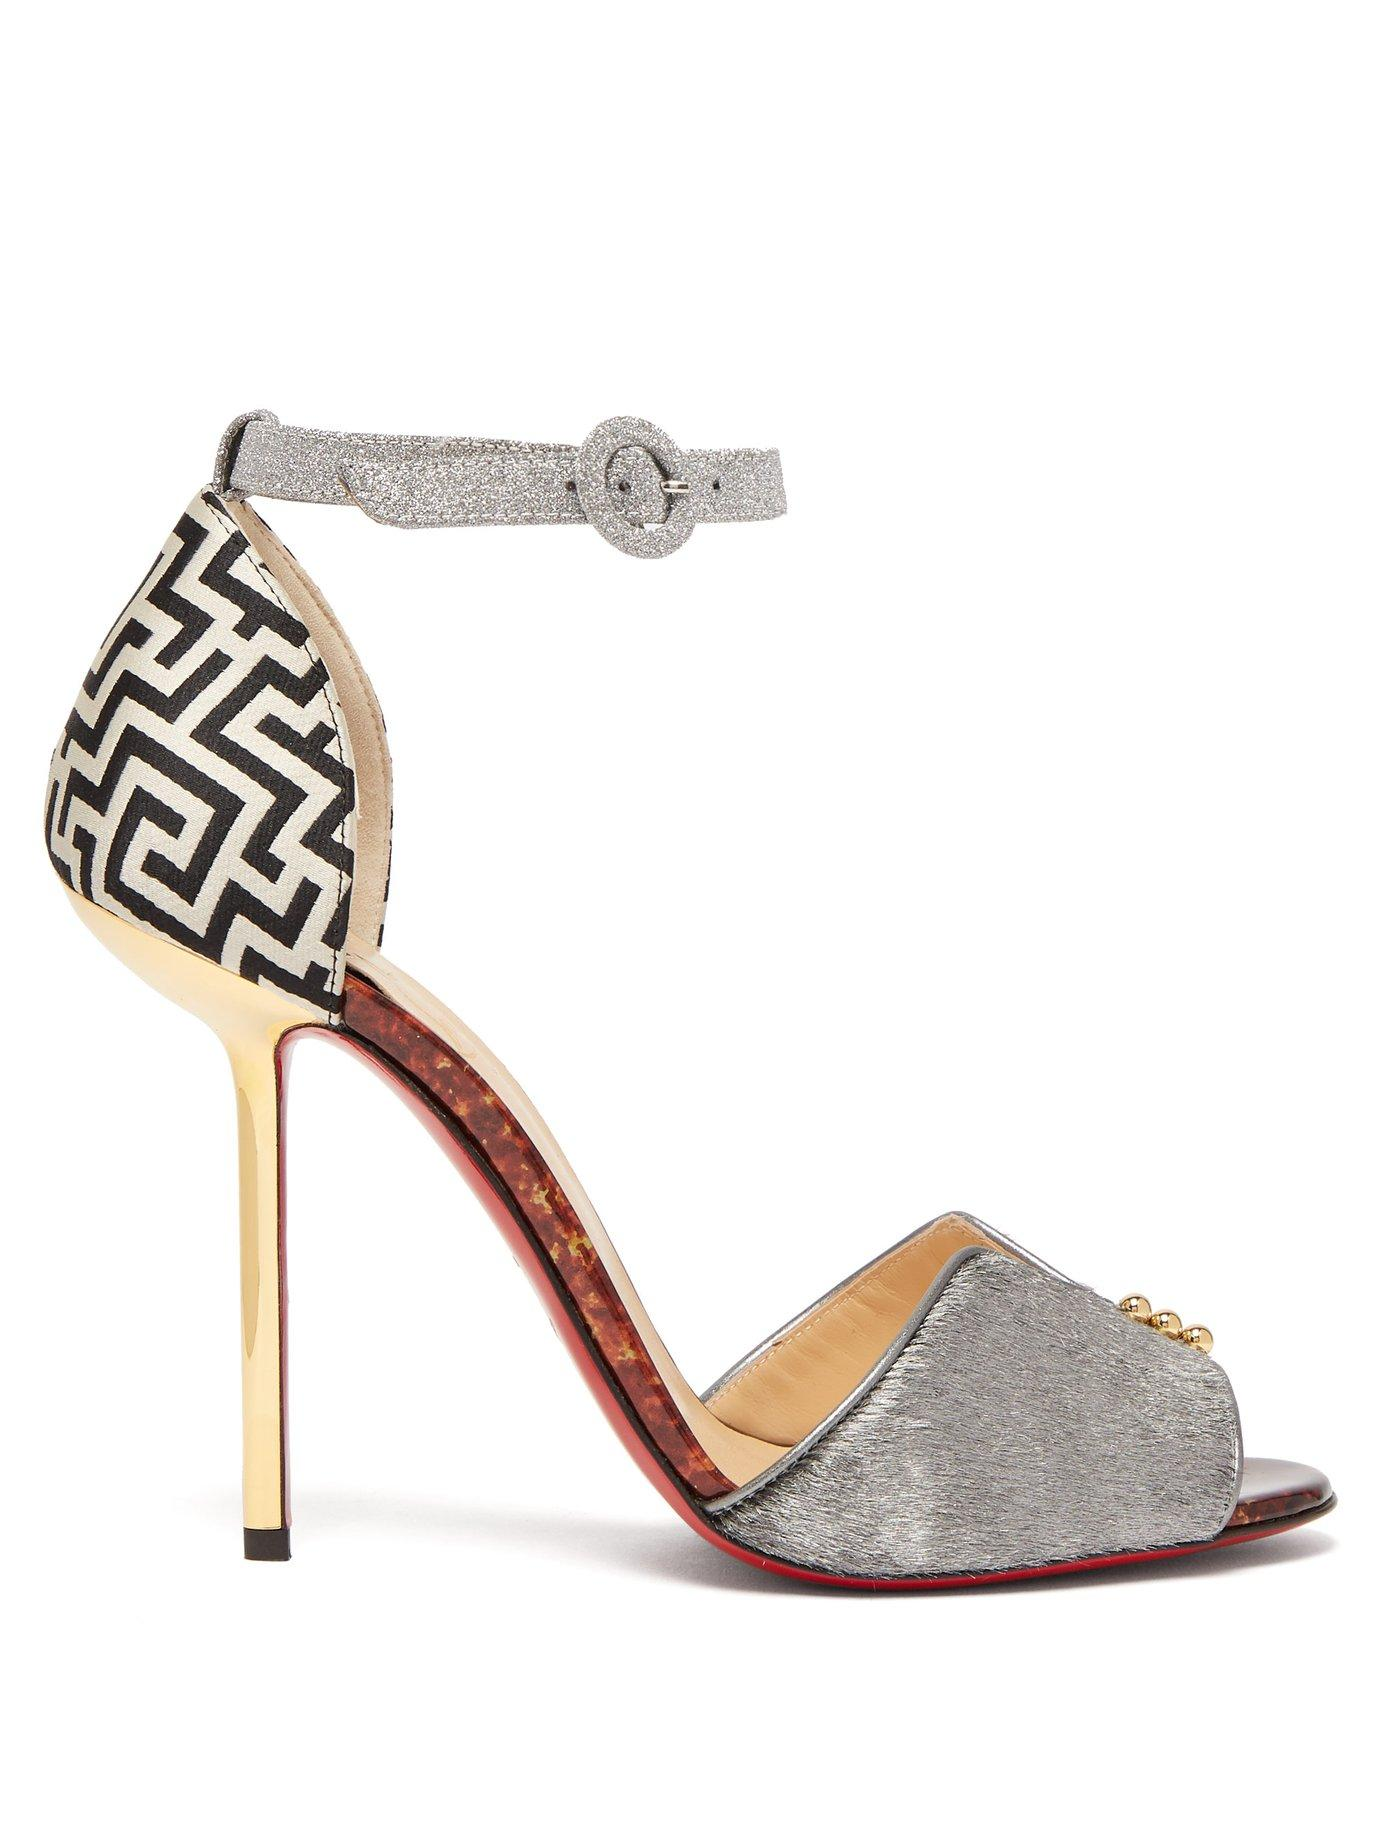 78683391807f Christian Louboutin Notte Bella 100 Leather Sandals In Multi